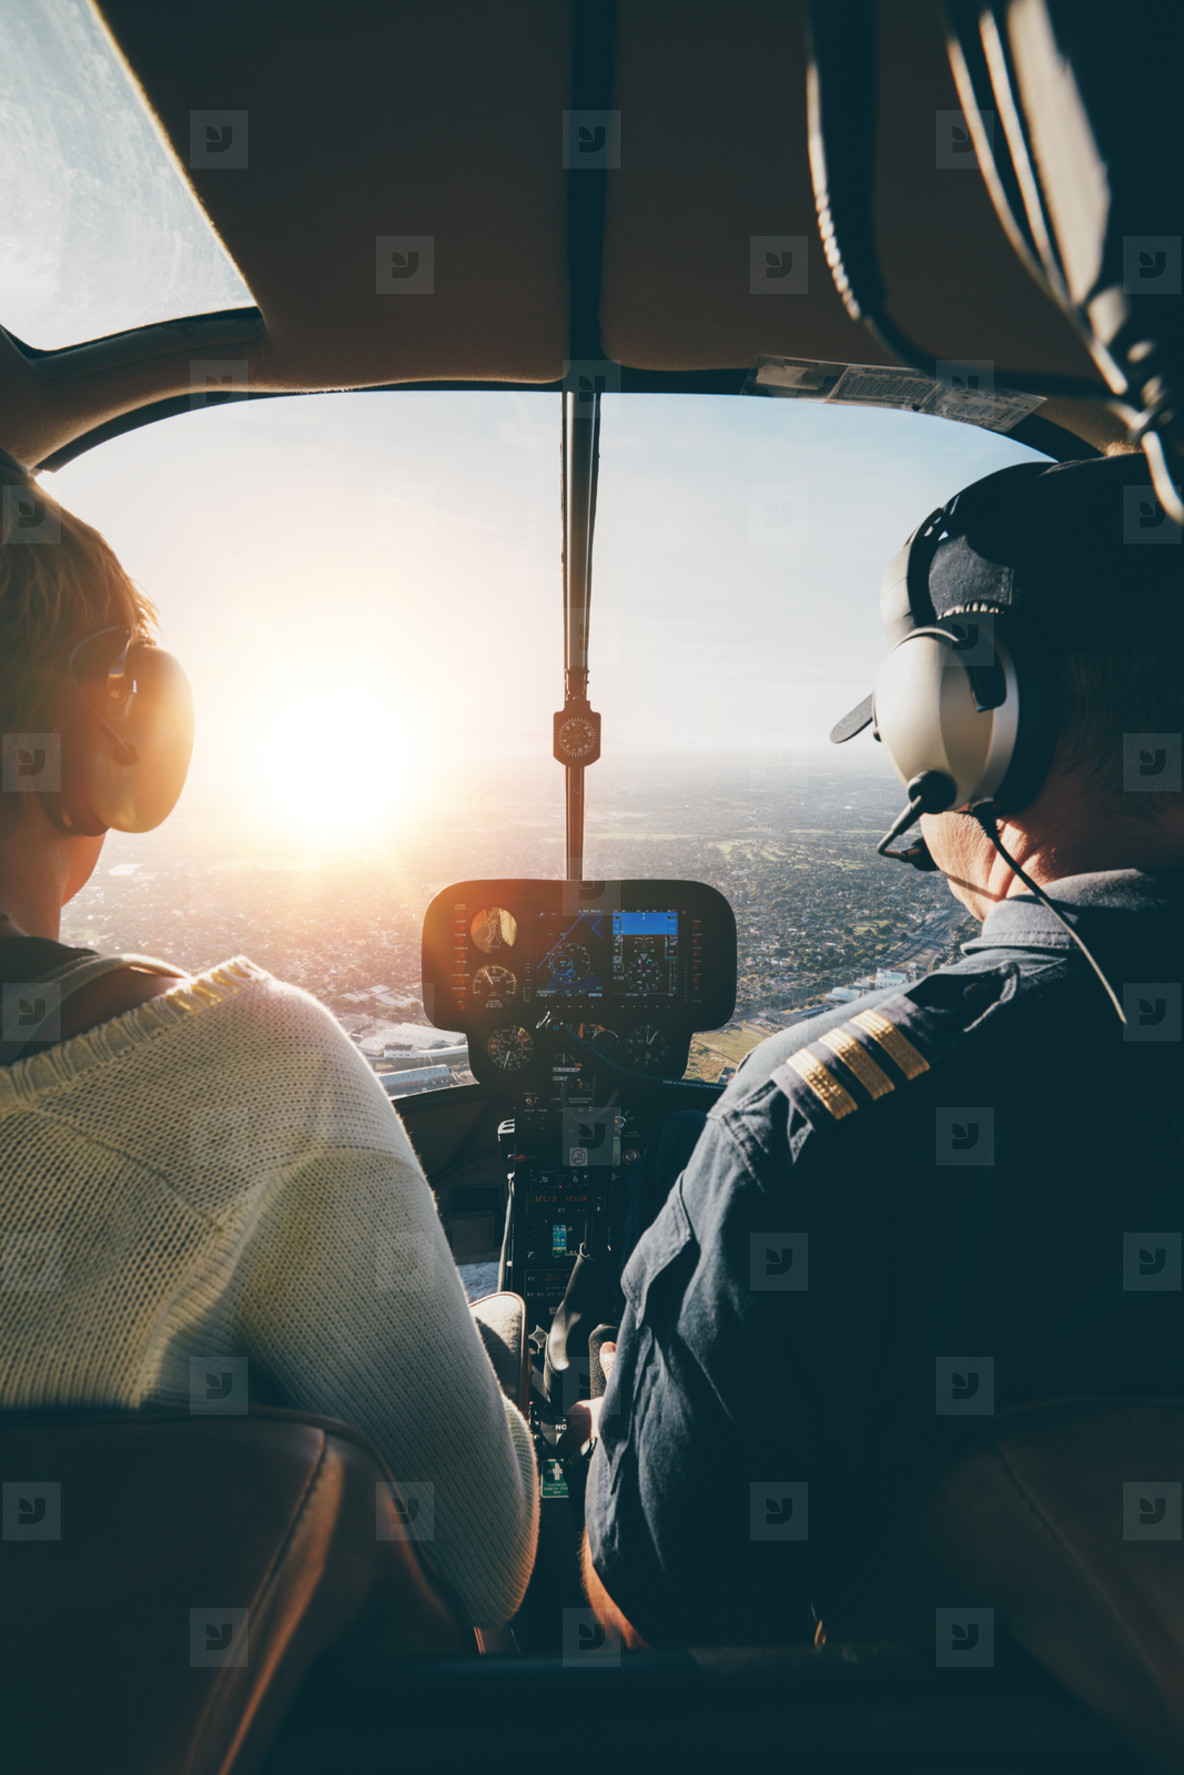 Pilots flying a helicopter on sunny day